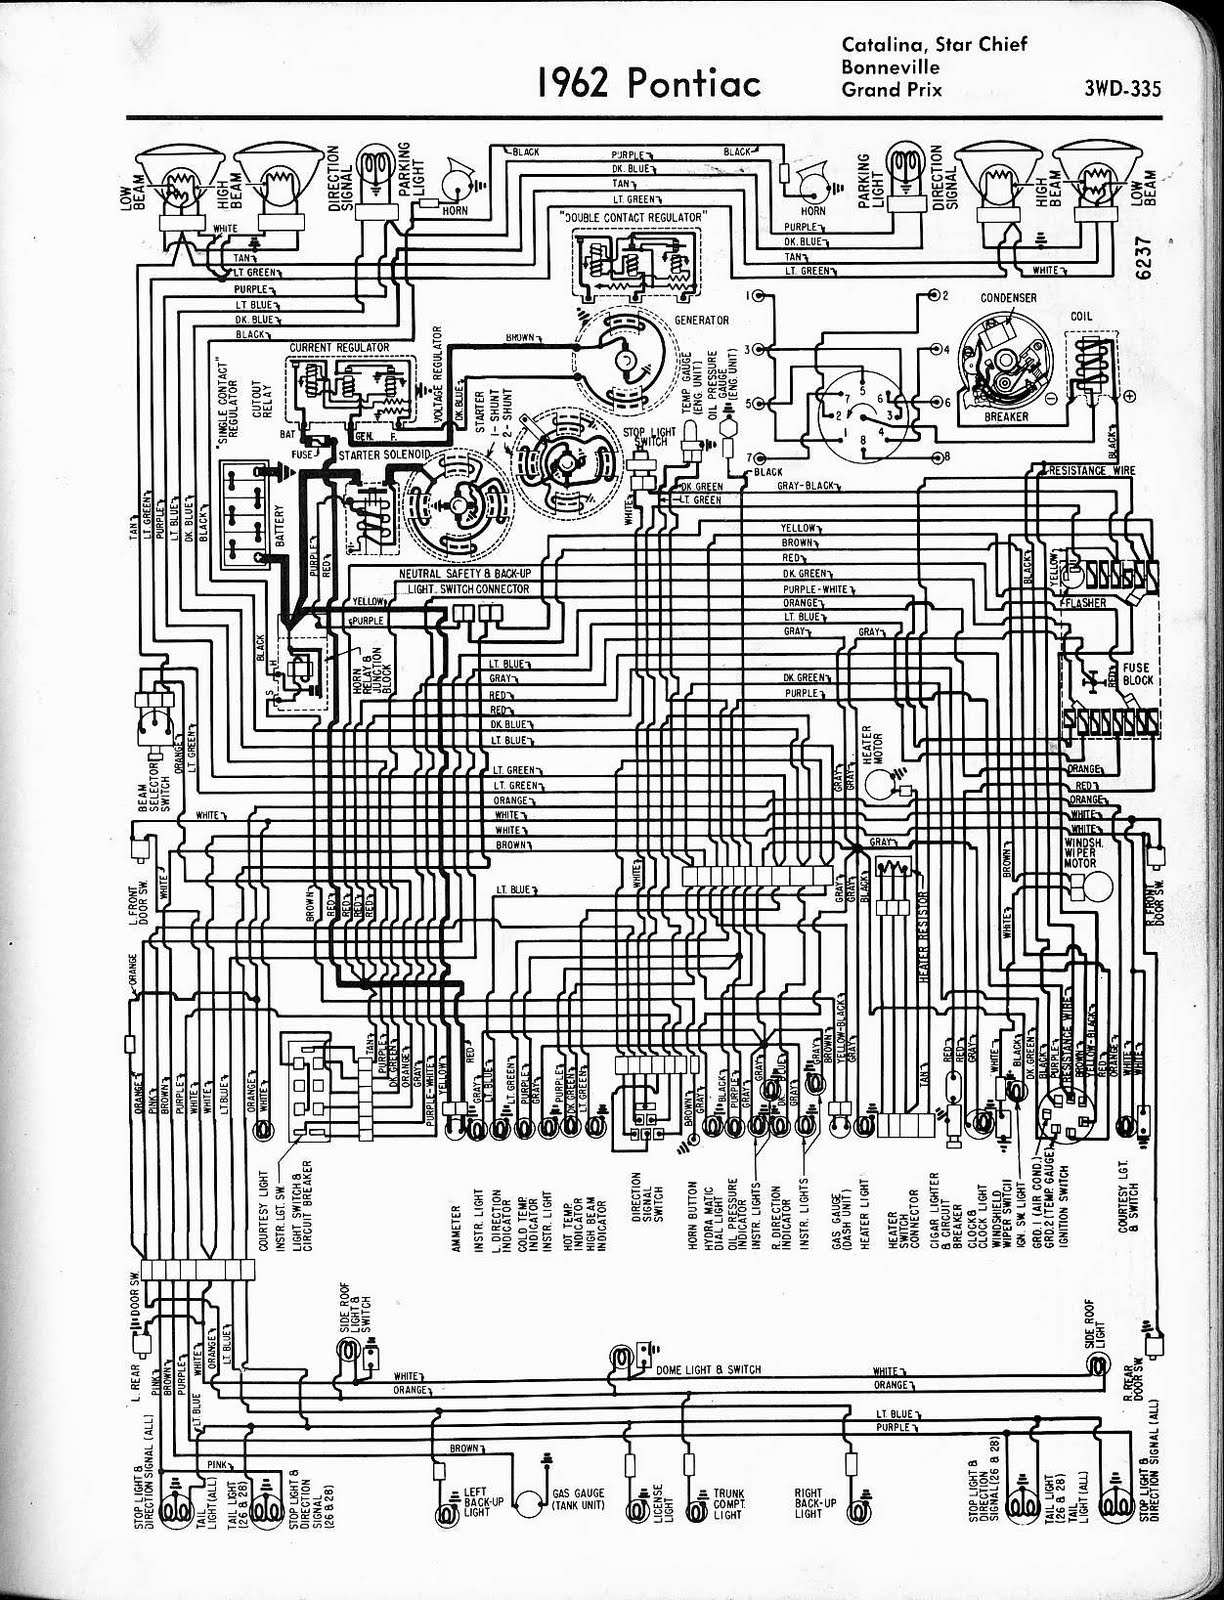 1966 Pontiac Bonneville Wiring Diagram Schematics Diagrams Barracuda Harness Free Auto 1962 Catalina Star Chief Grand Prix 2004